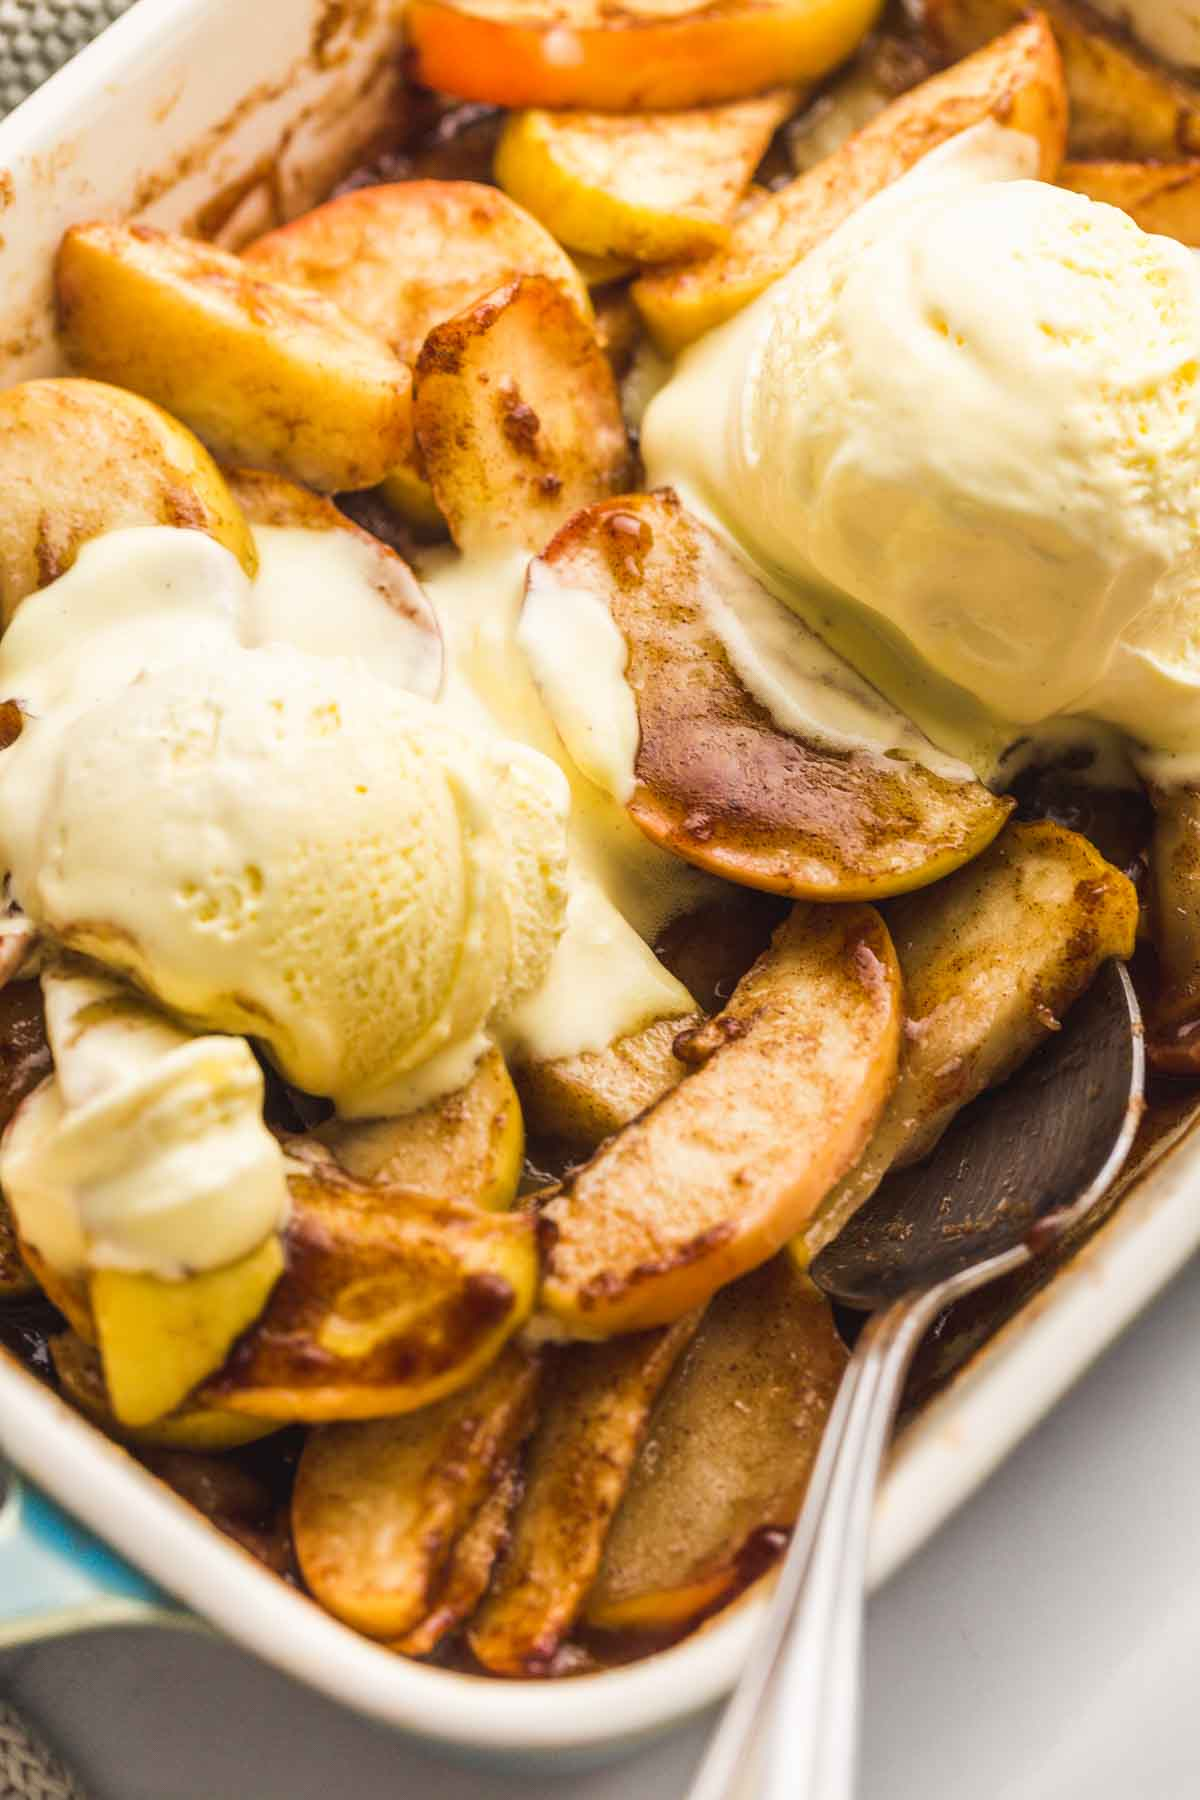 A close up of baked apples, and vanilla ice cream scoops